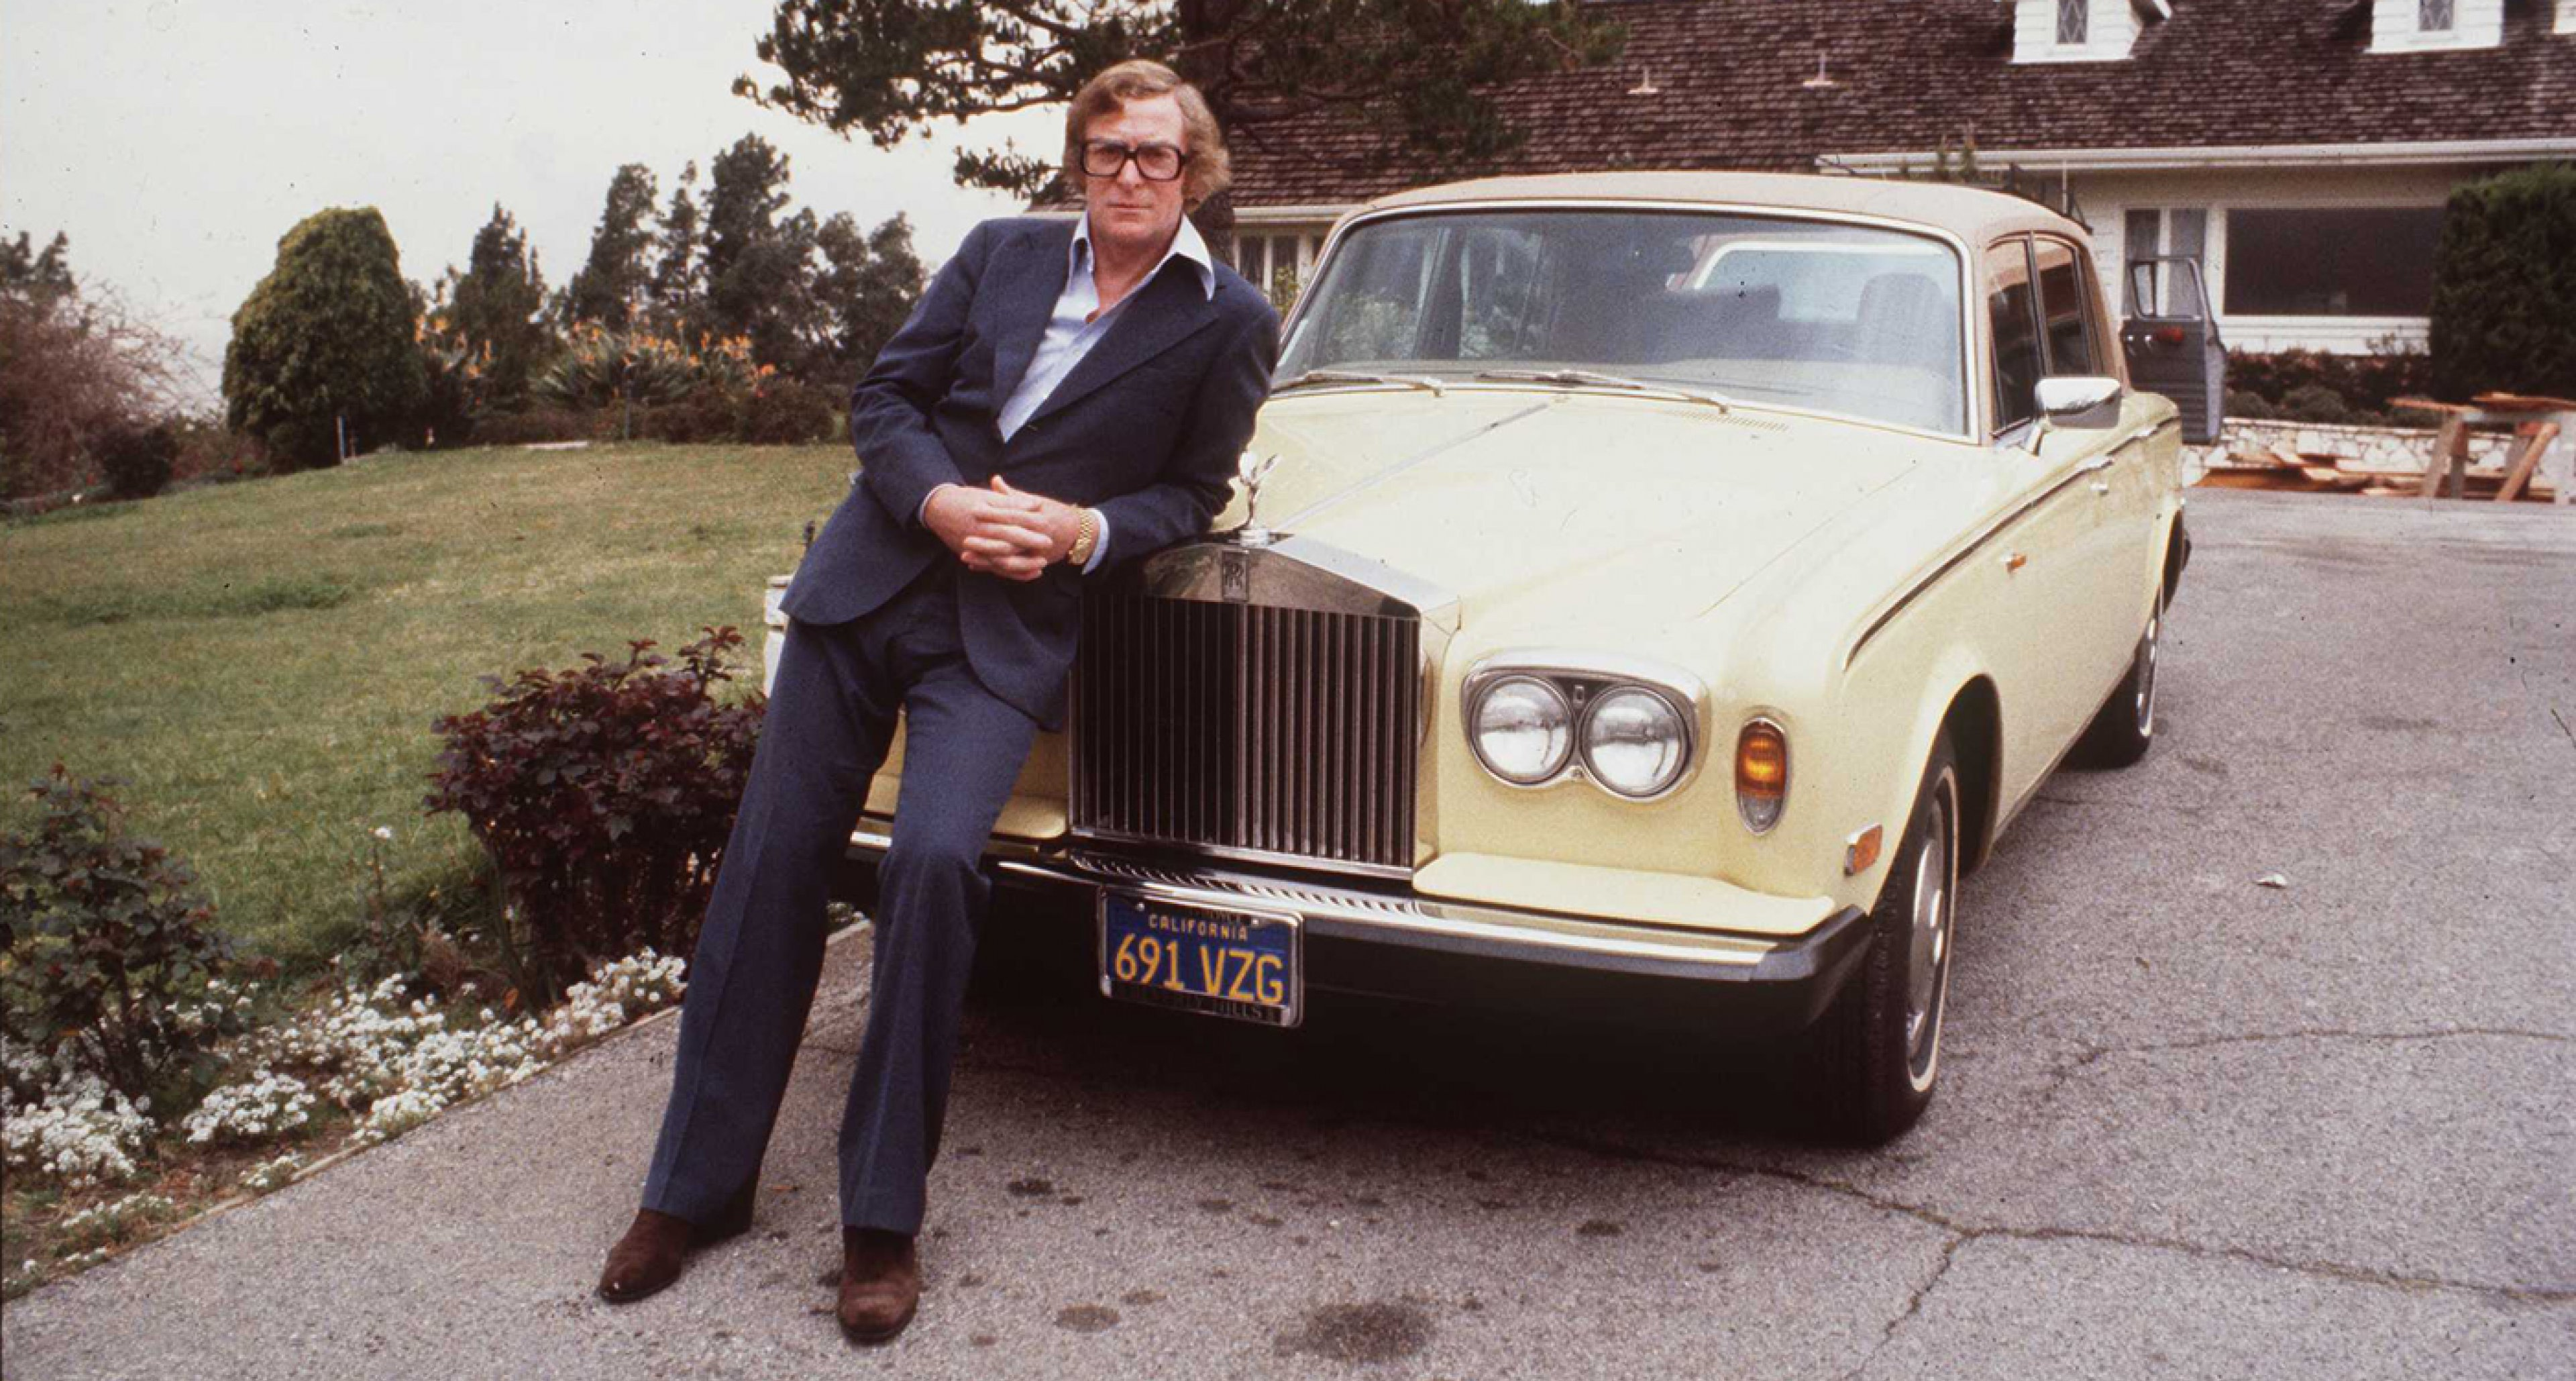 Michael Caine and his Rolls-Royce.